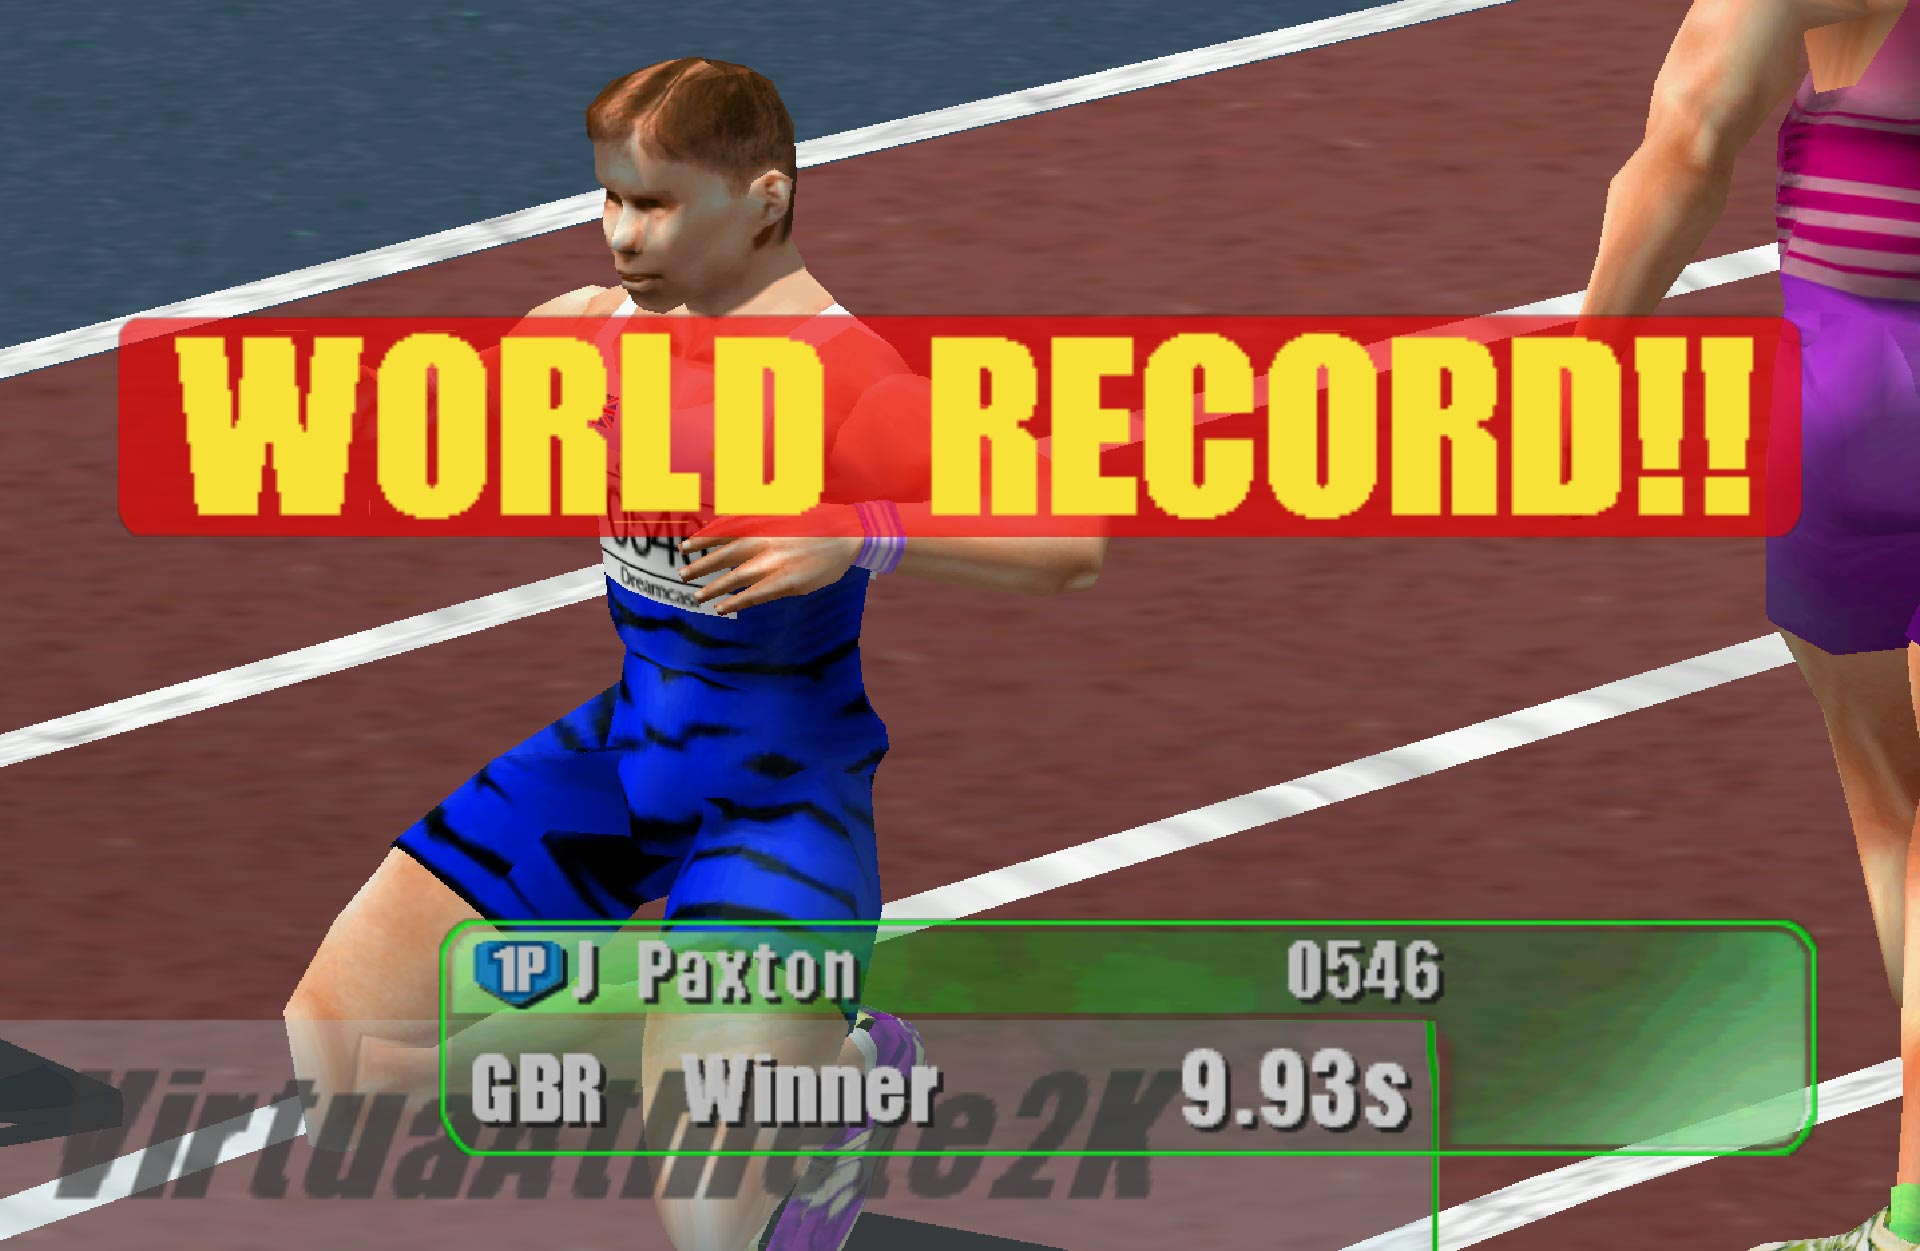 Virtua Athlete 2K world record